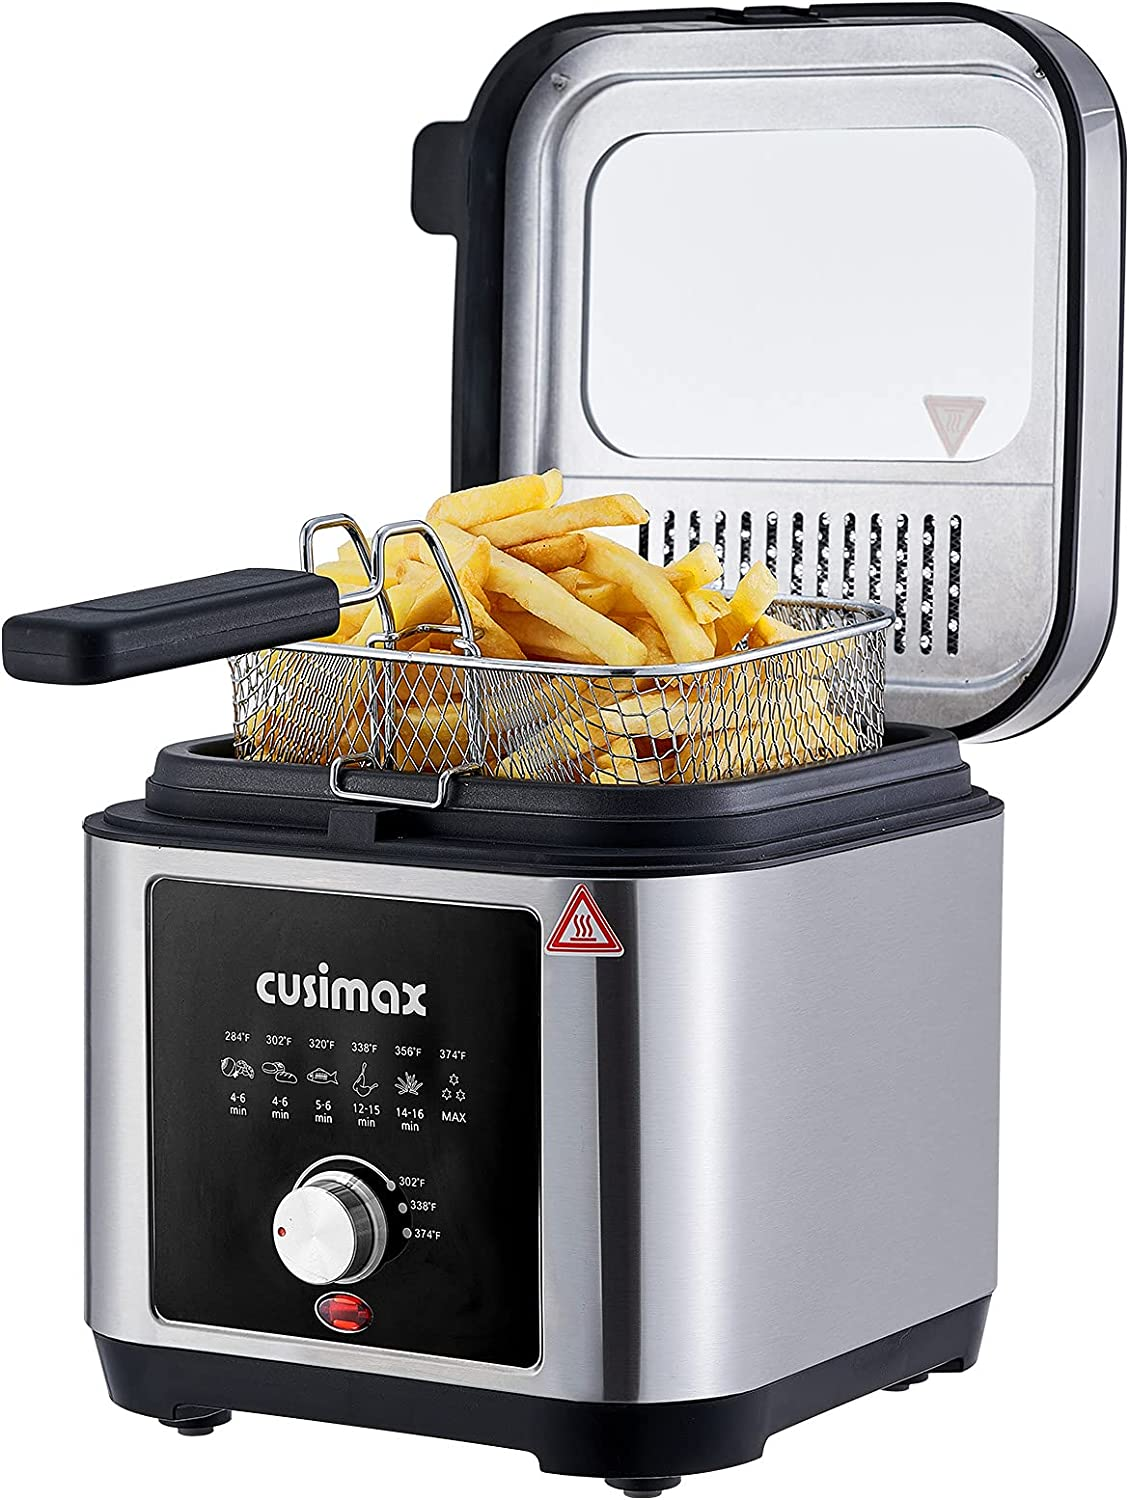 Deep Fryer CUSIMAX Electric Deep Fryer with Basket and Drip Hook, 2.6Qt Oil Capacity Fryer with Temperature Control, Removable Lid with View Window and Filter, Stainless Steel fryers, 1200W